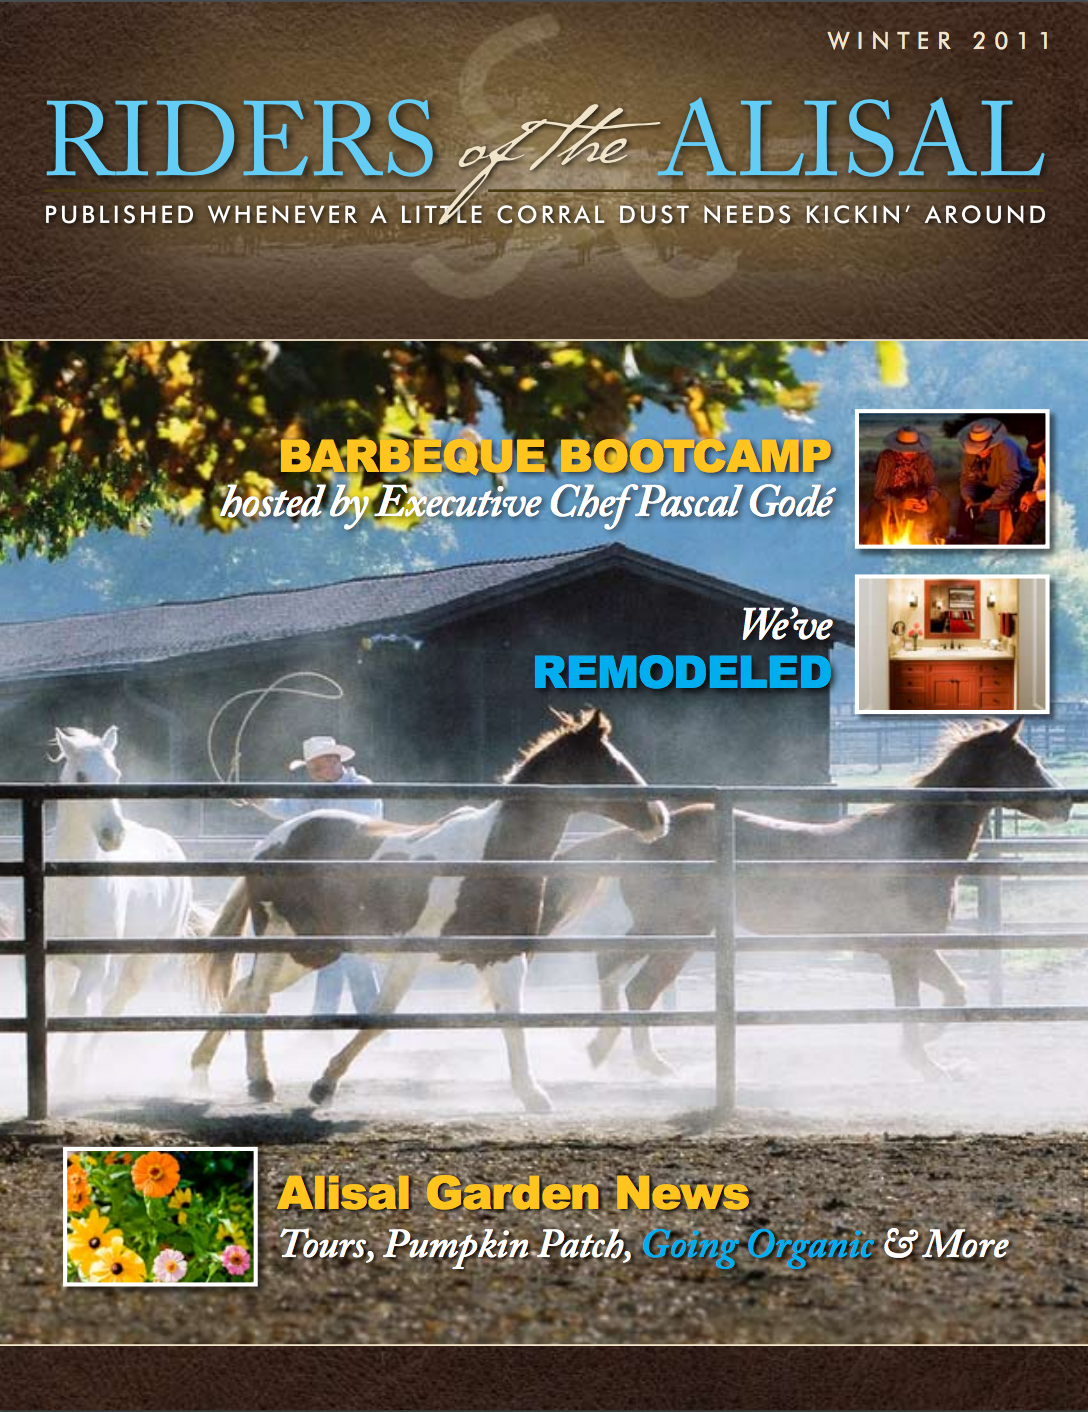 Riders of the Alisal 2011 winter issue - Alisal Guest Ranch and Resort